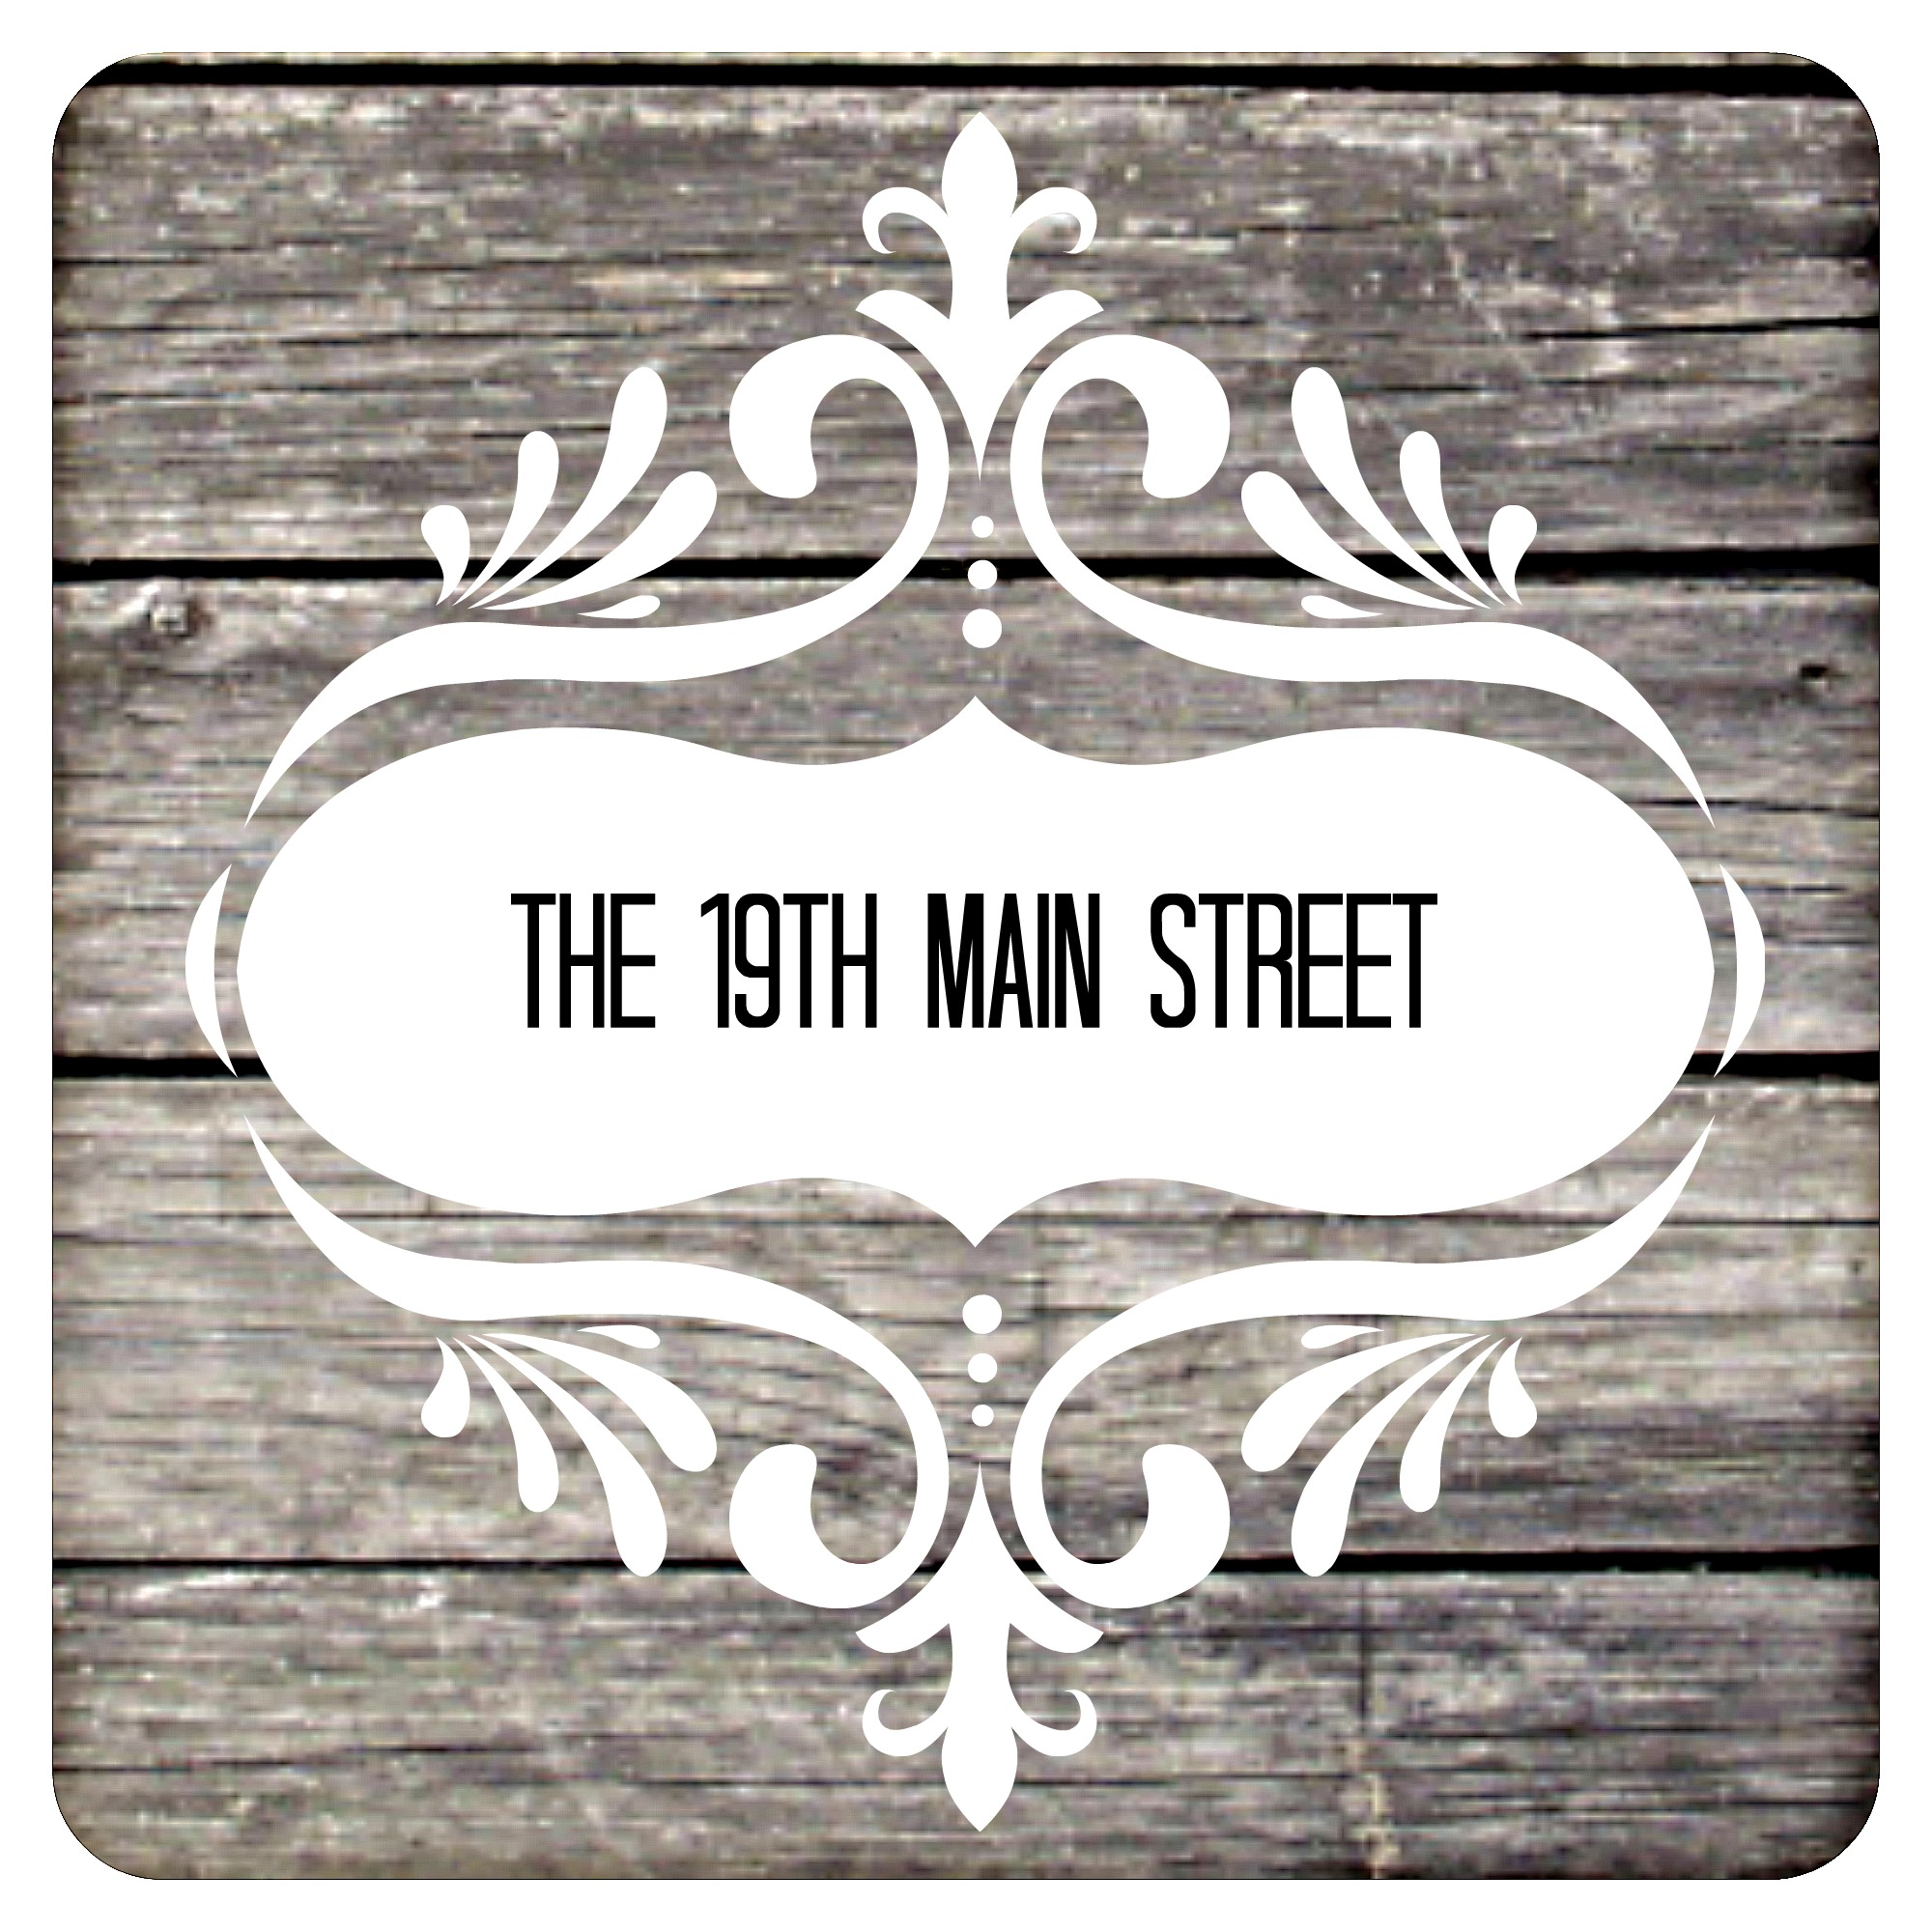 The 19th Main Street